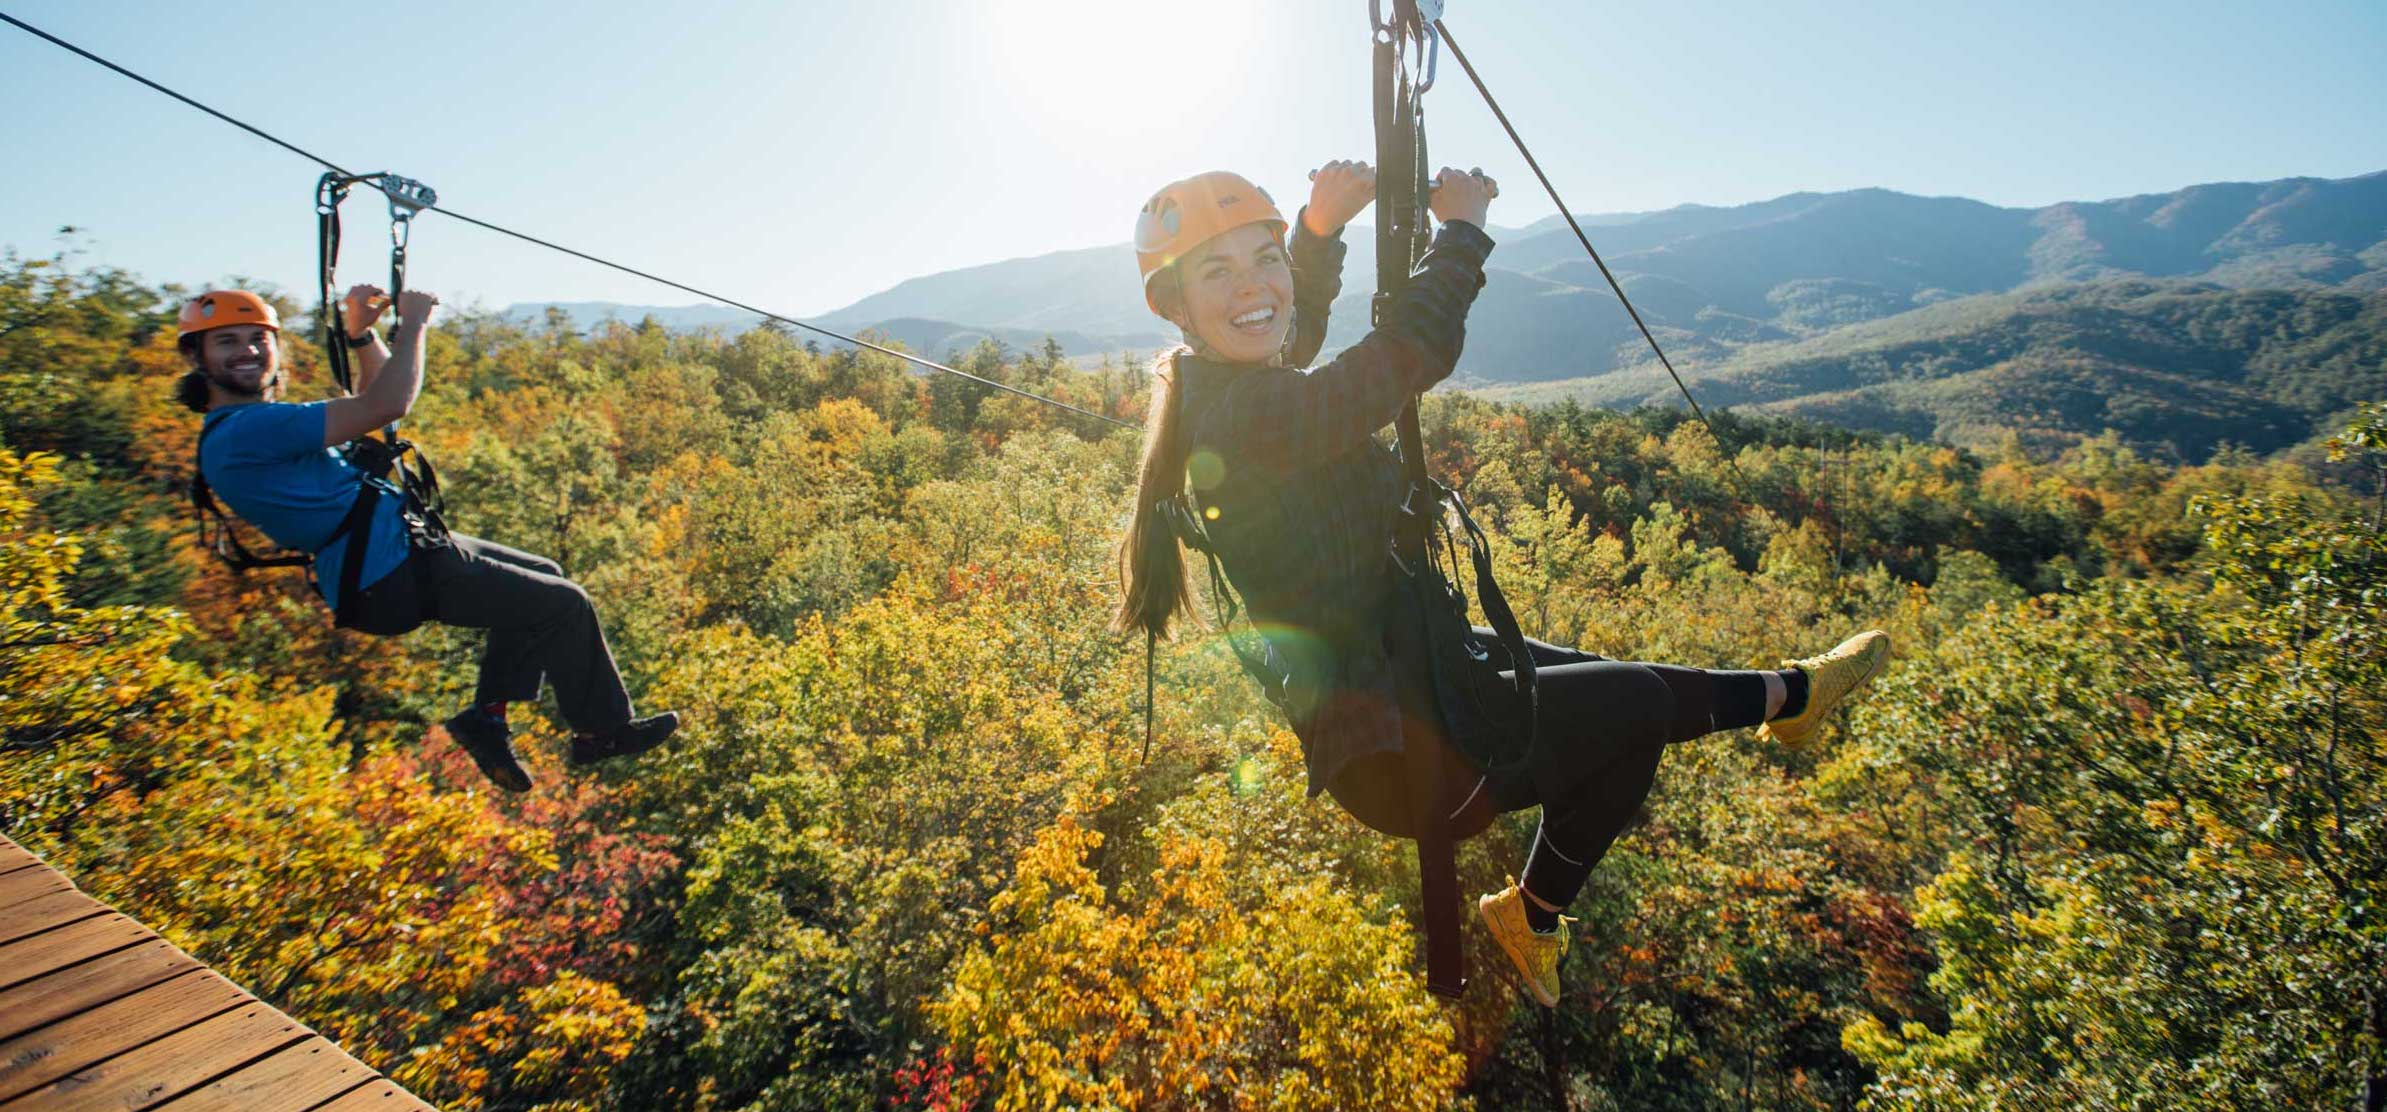 4 Things to Know About CLIMB Works' Mountaintop Zipline Tour in the Smoky Mountains